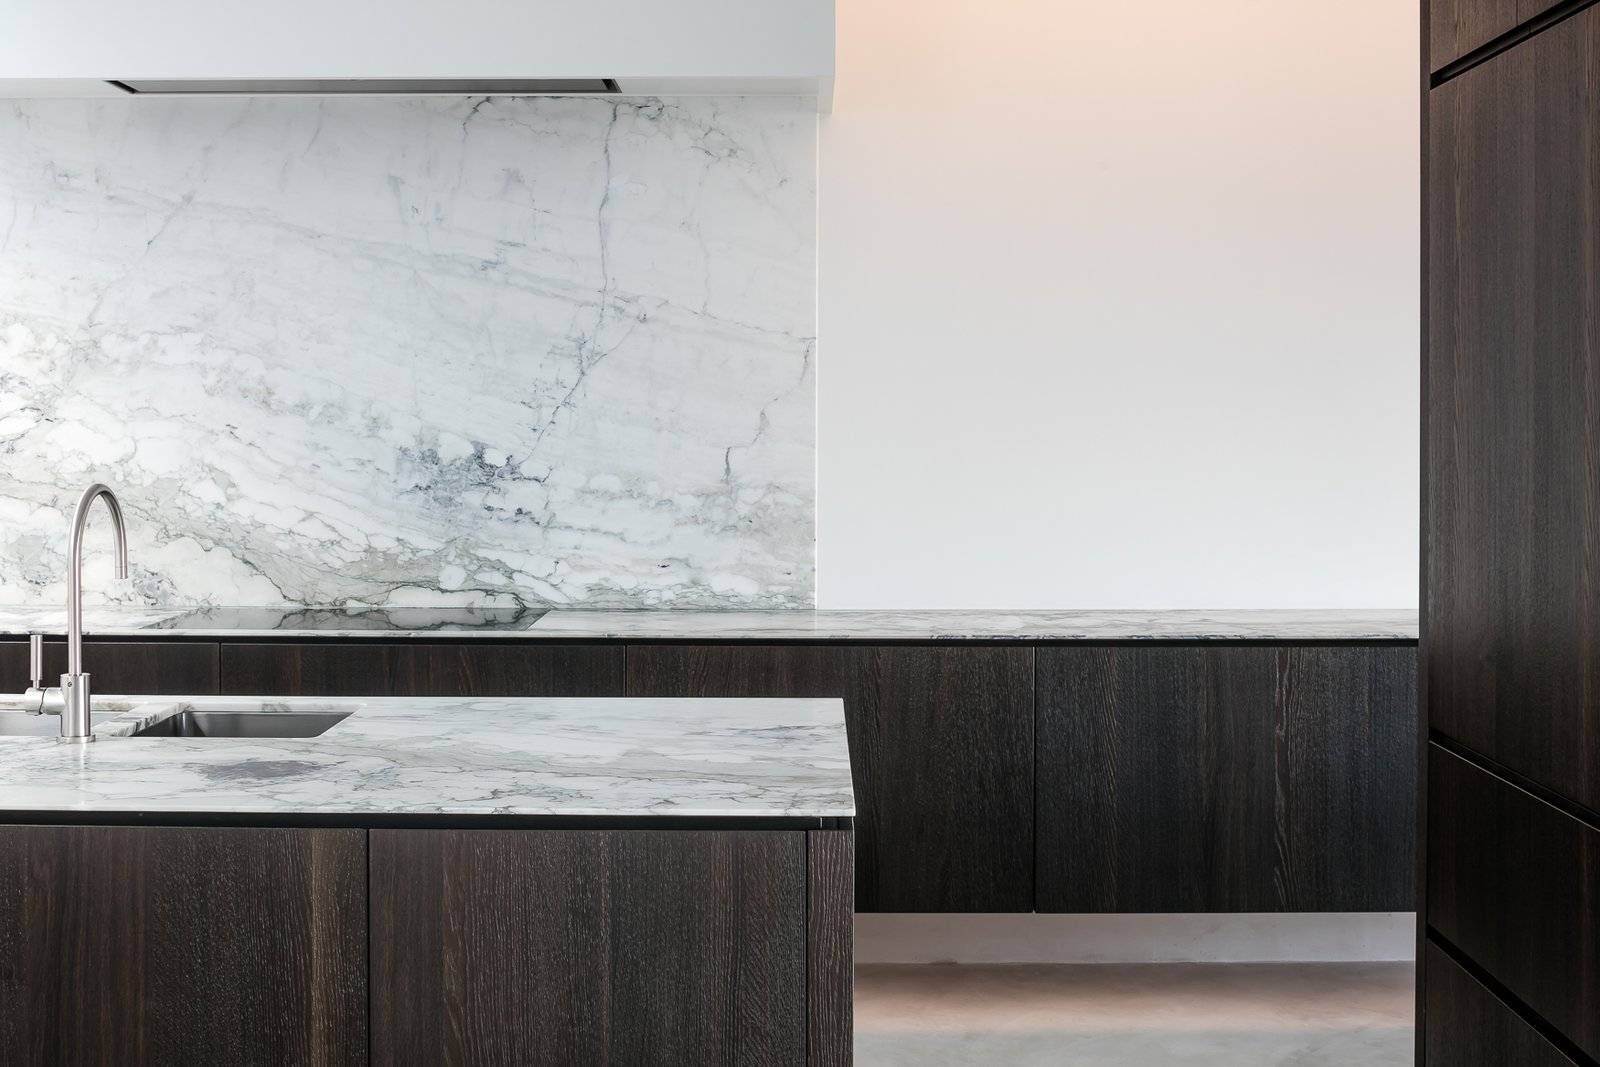 Tagged: Kitchen, Marble Counter, Marble Backsplashe, Ceiling Lighting, and Undermount Sink. Circu House by Leibal